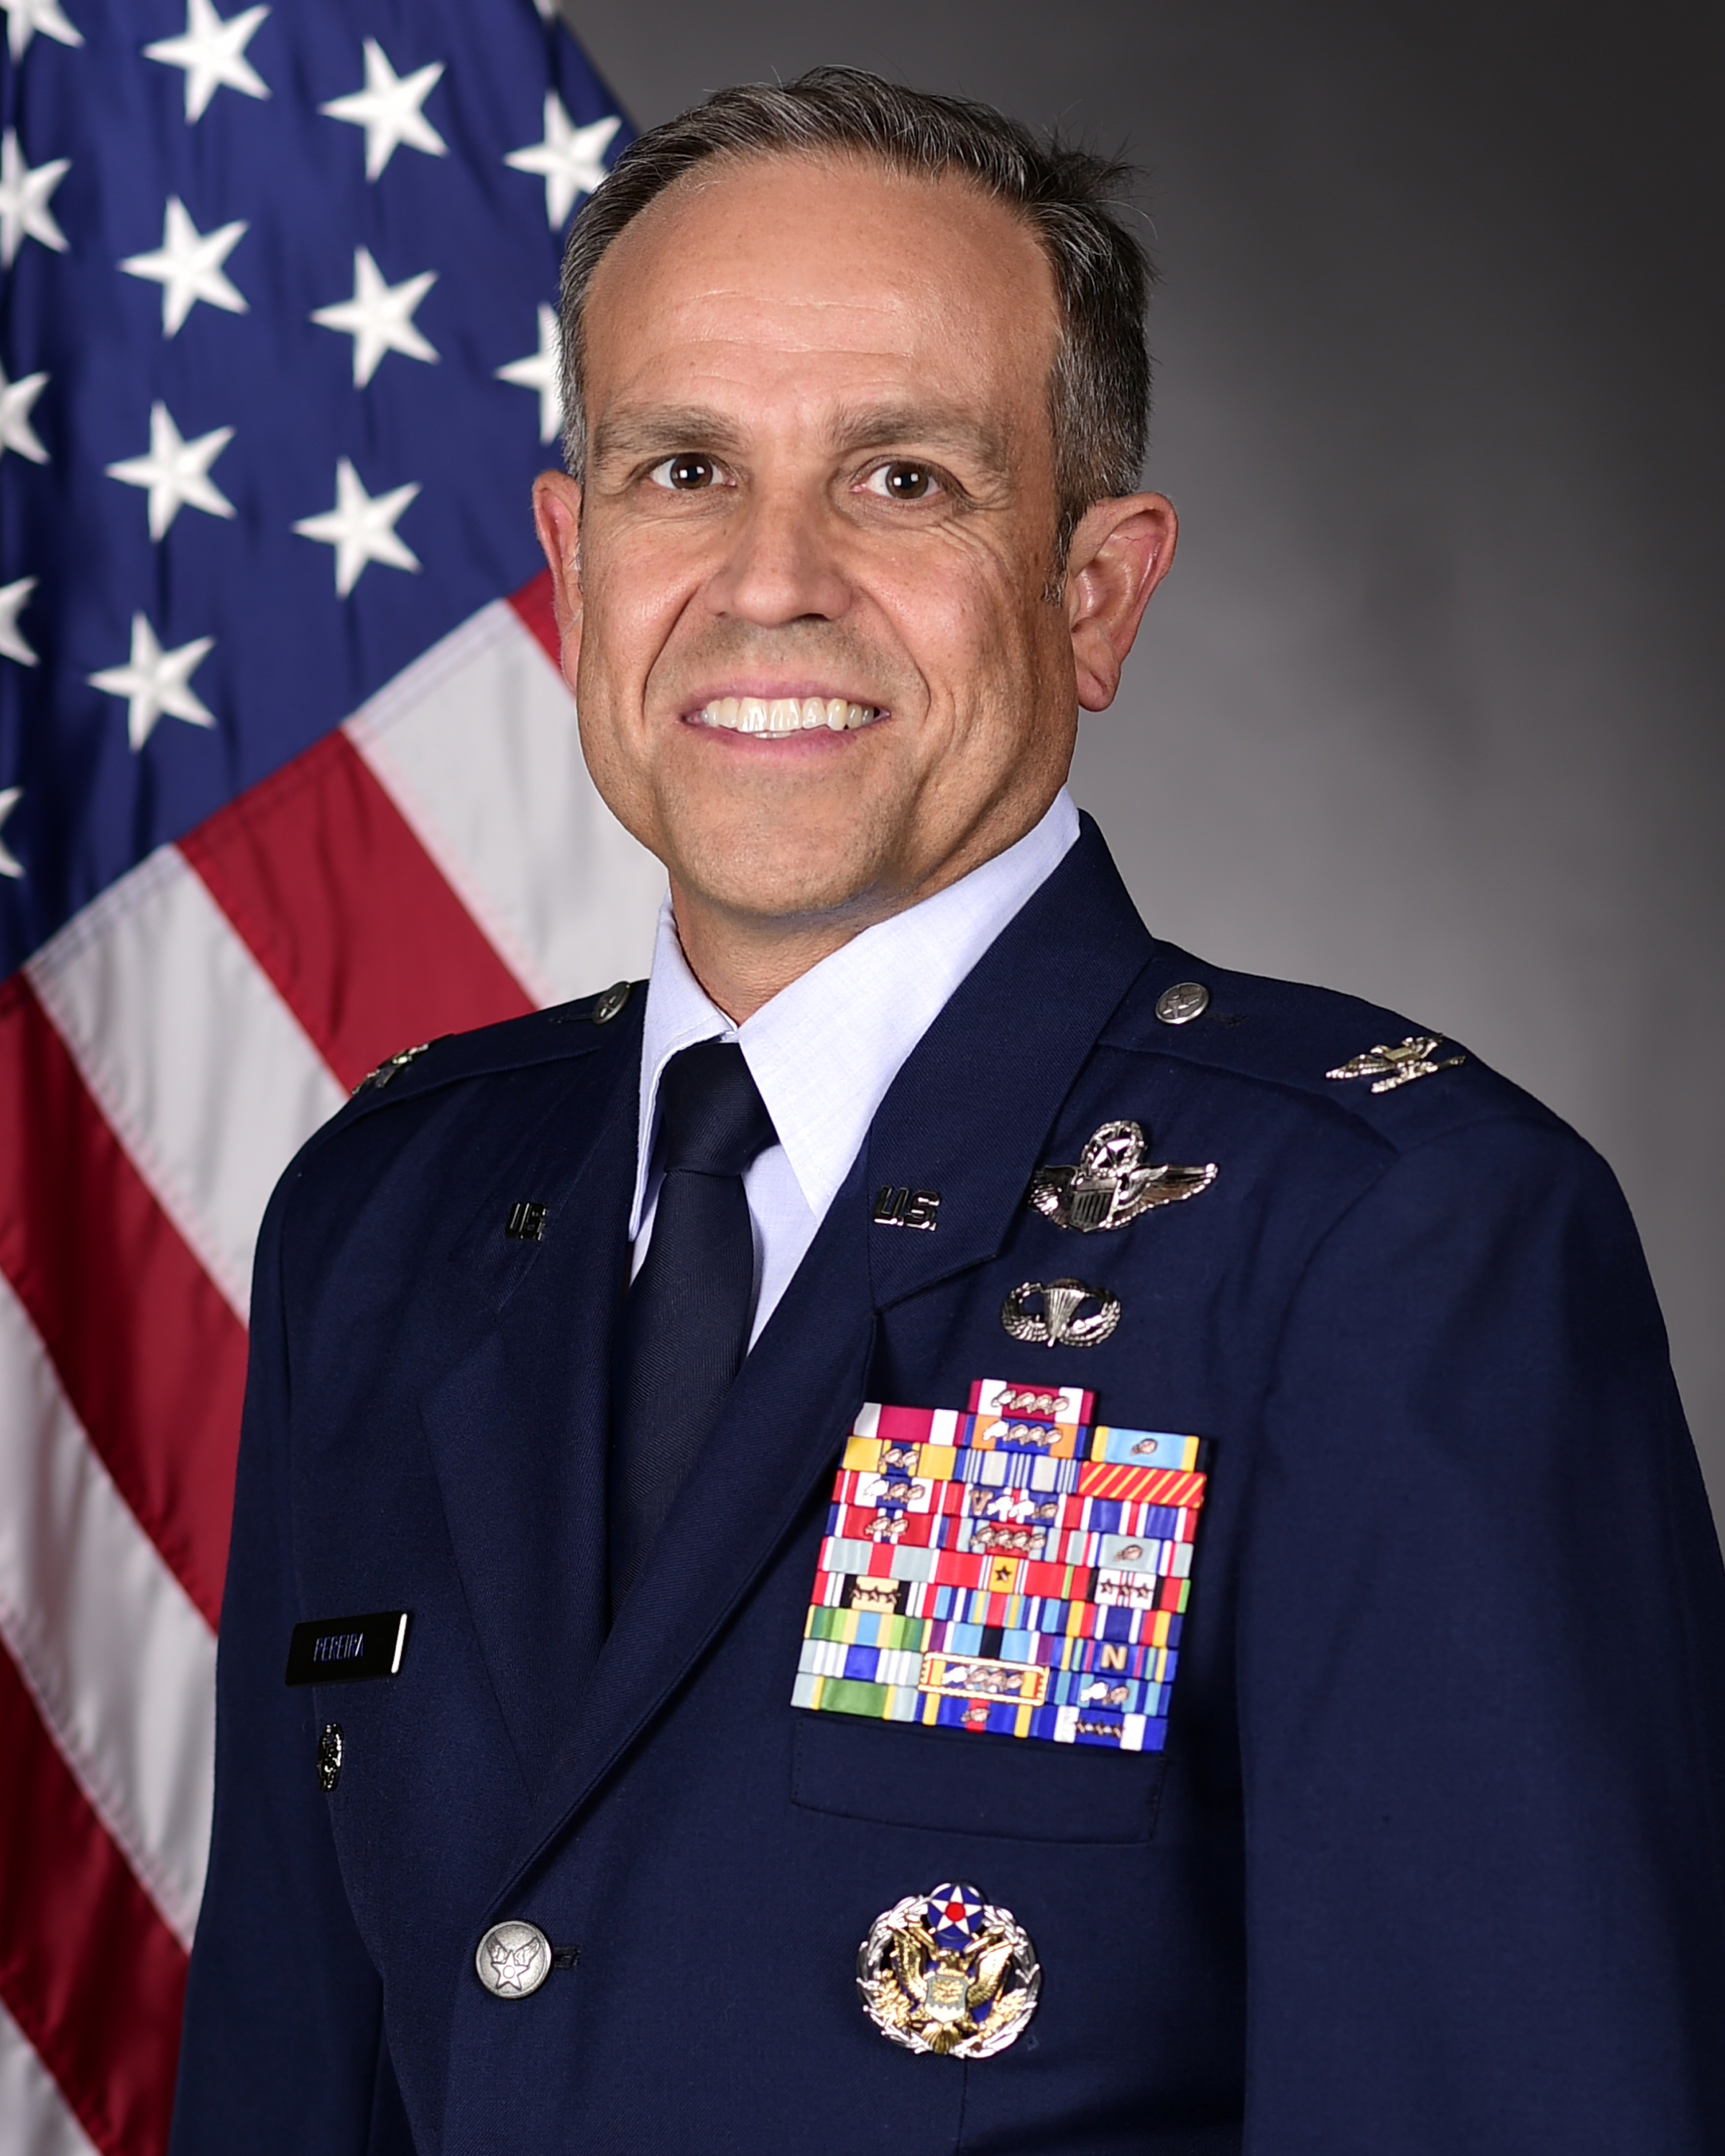 A professional image of Col. Victor Pereira